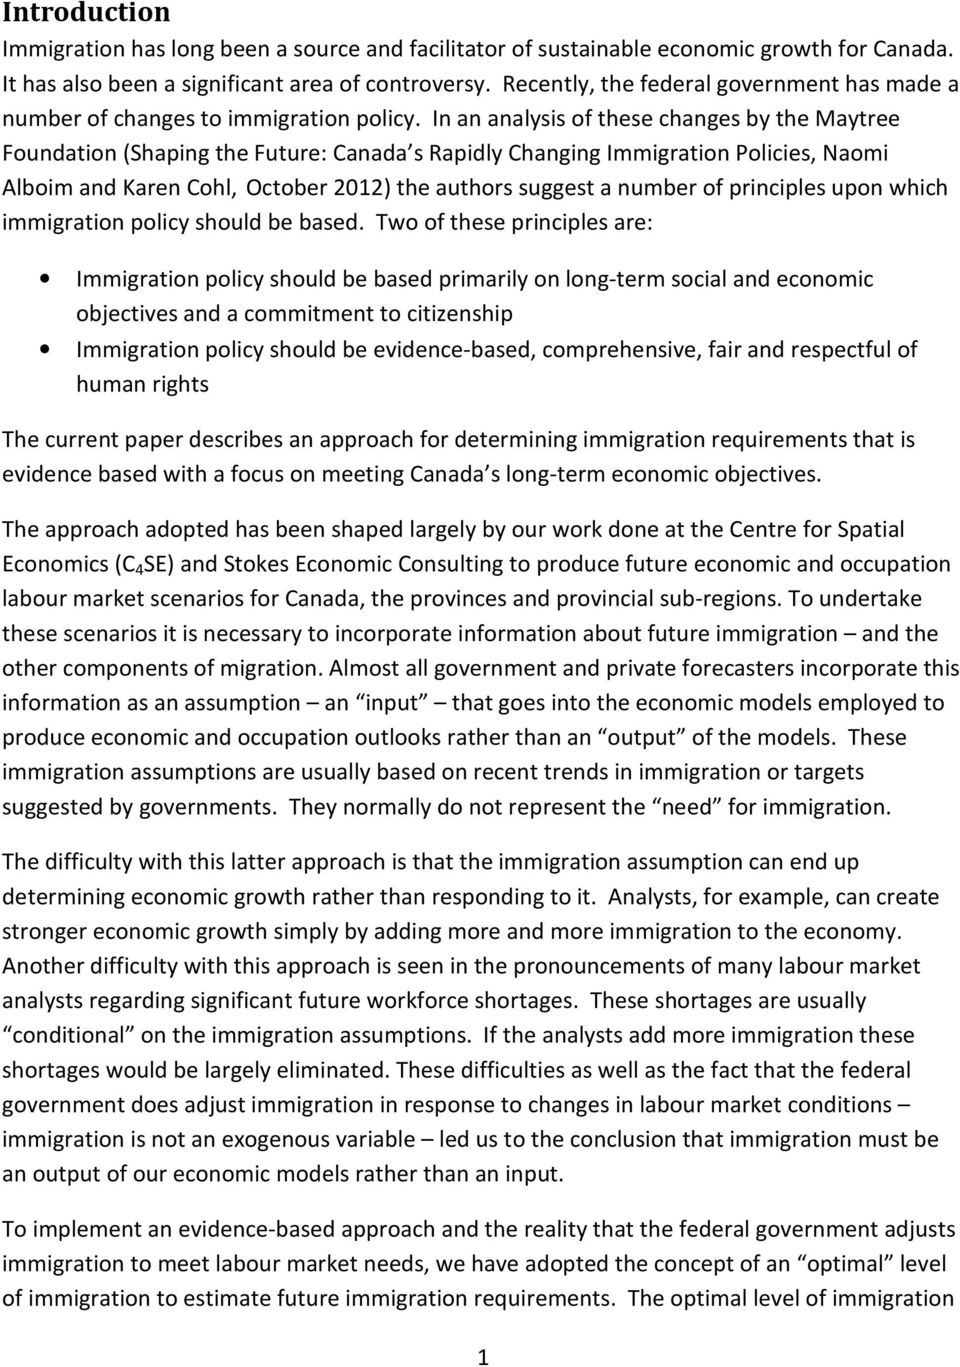 In an analysis of these changes by the Maytree Foundation (Shaping the Future: Canada s Rapidly Changing Immigration Policies, Naomi Alboim and Karen Cohl, October 2012) the authors suggest a number